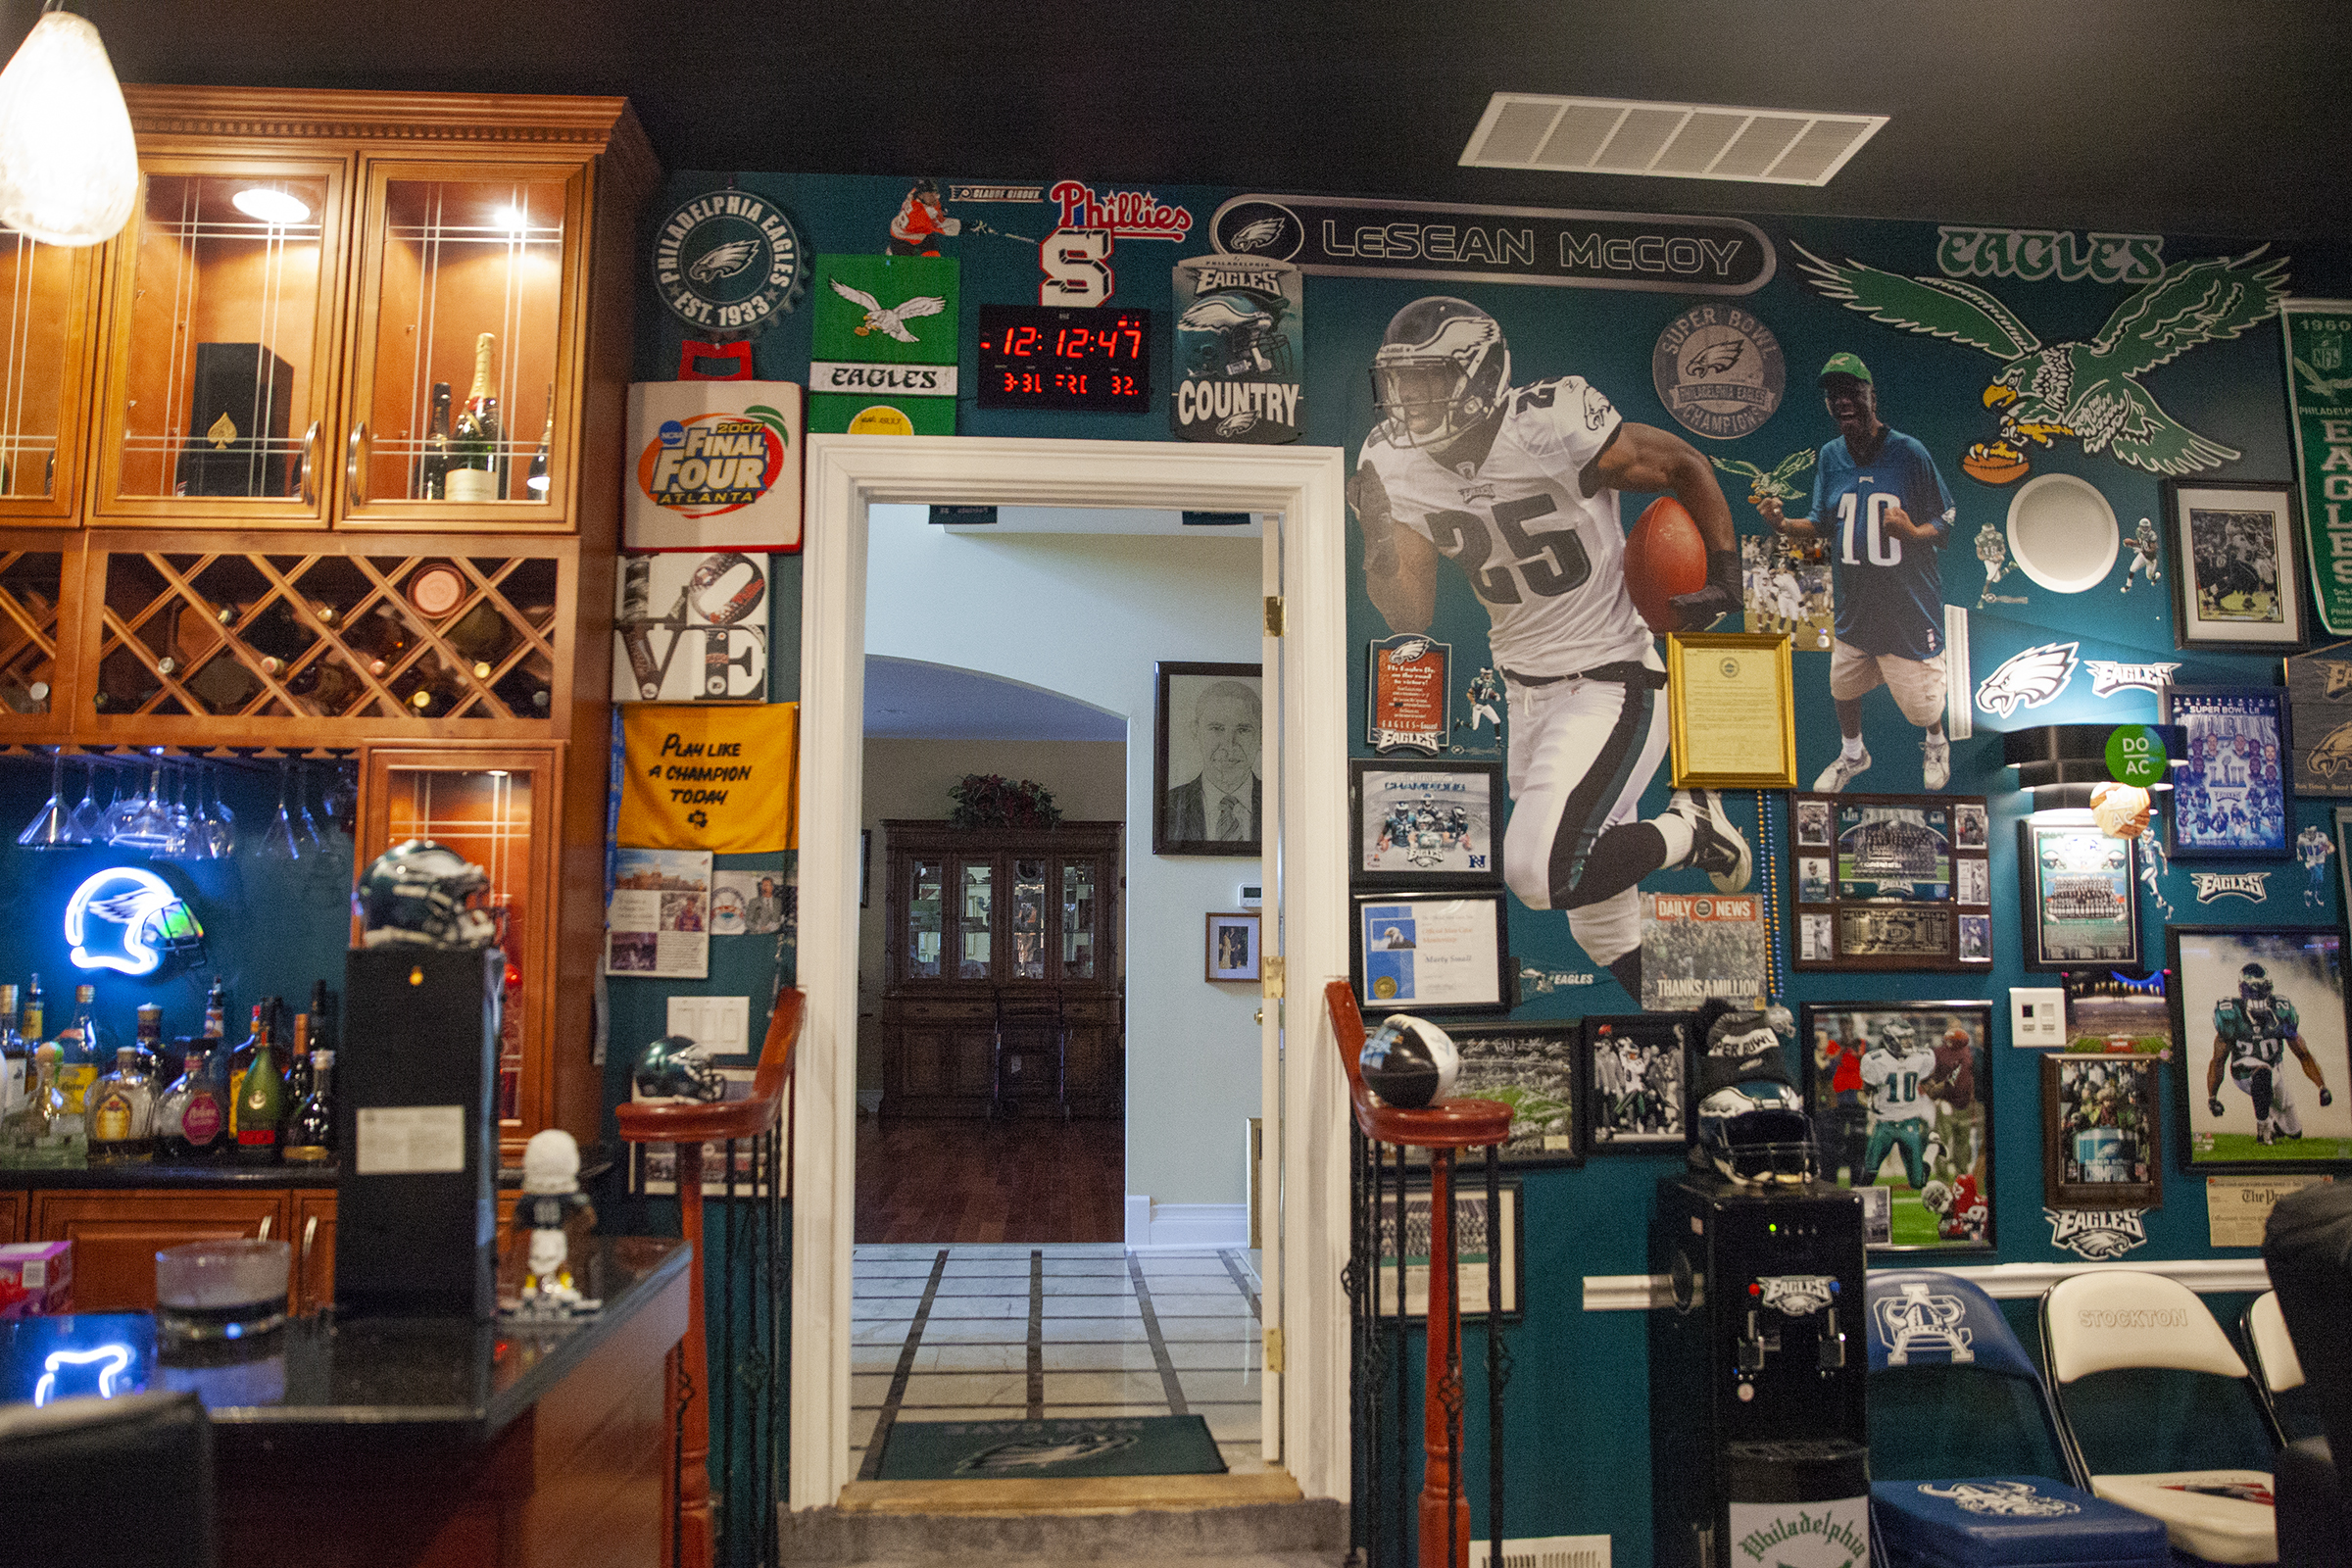 A look inside Marty Small�s fan cave or theatre room in his Atlantic City home on Friday, Aug. 31, 2018. Small bought new memorabilia, including a Super Bowl champion banner, following the Eagles win in Feb.